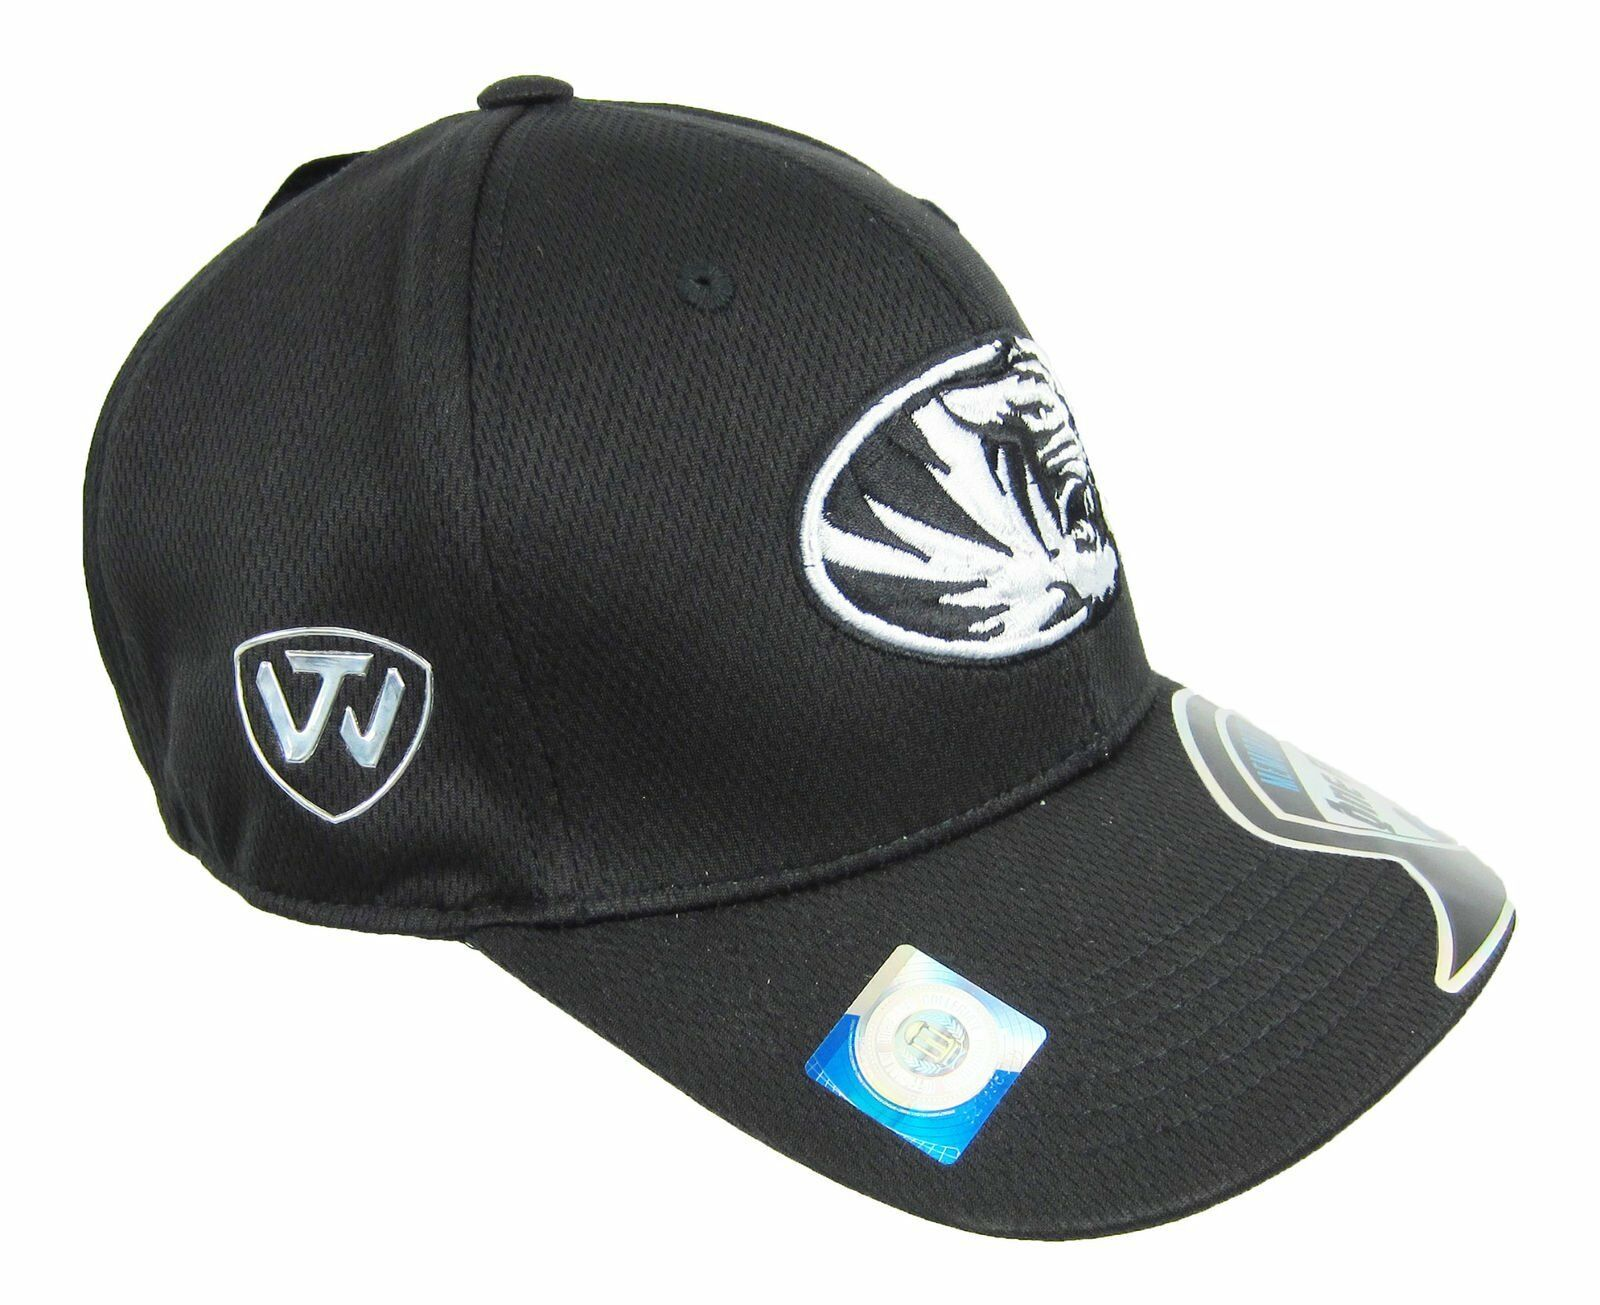 wholesale dealer 88e9a f8a77 ... italy top of the world mens ncaa missouri tigers hat one size fit all hat  tigers